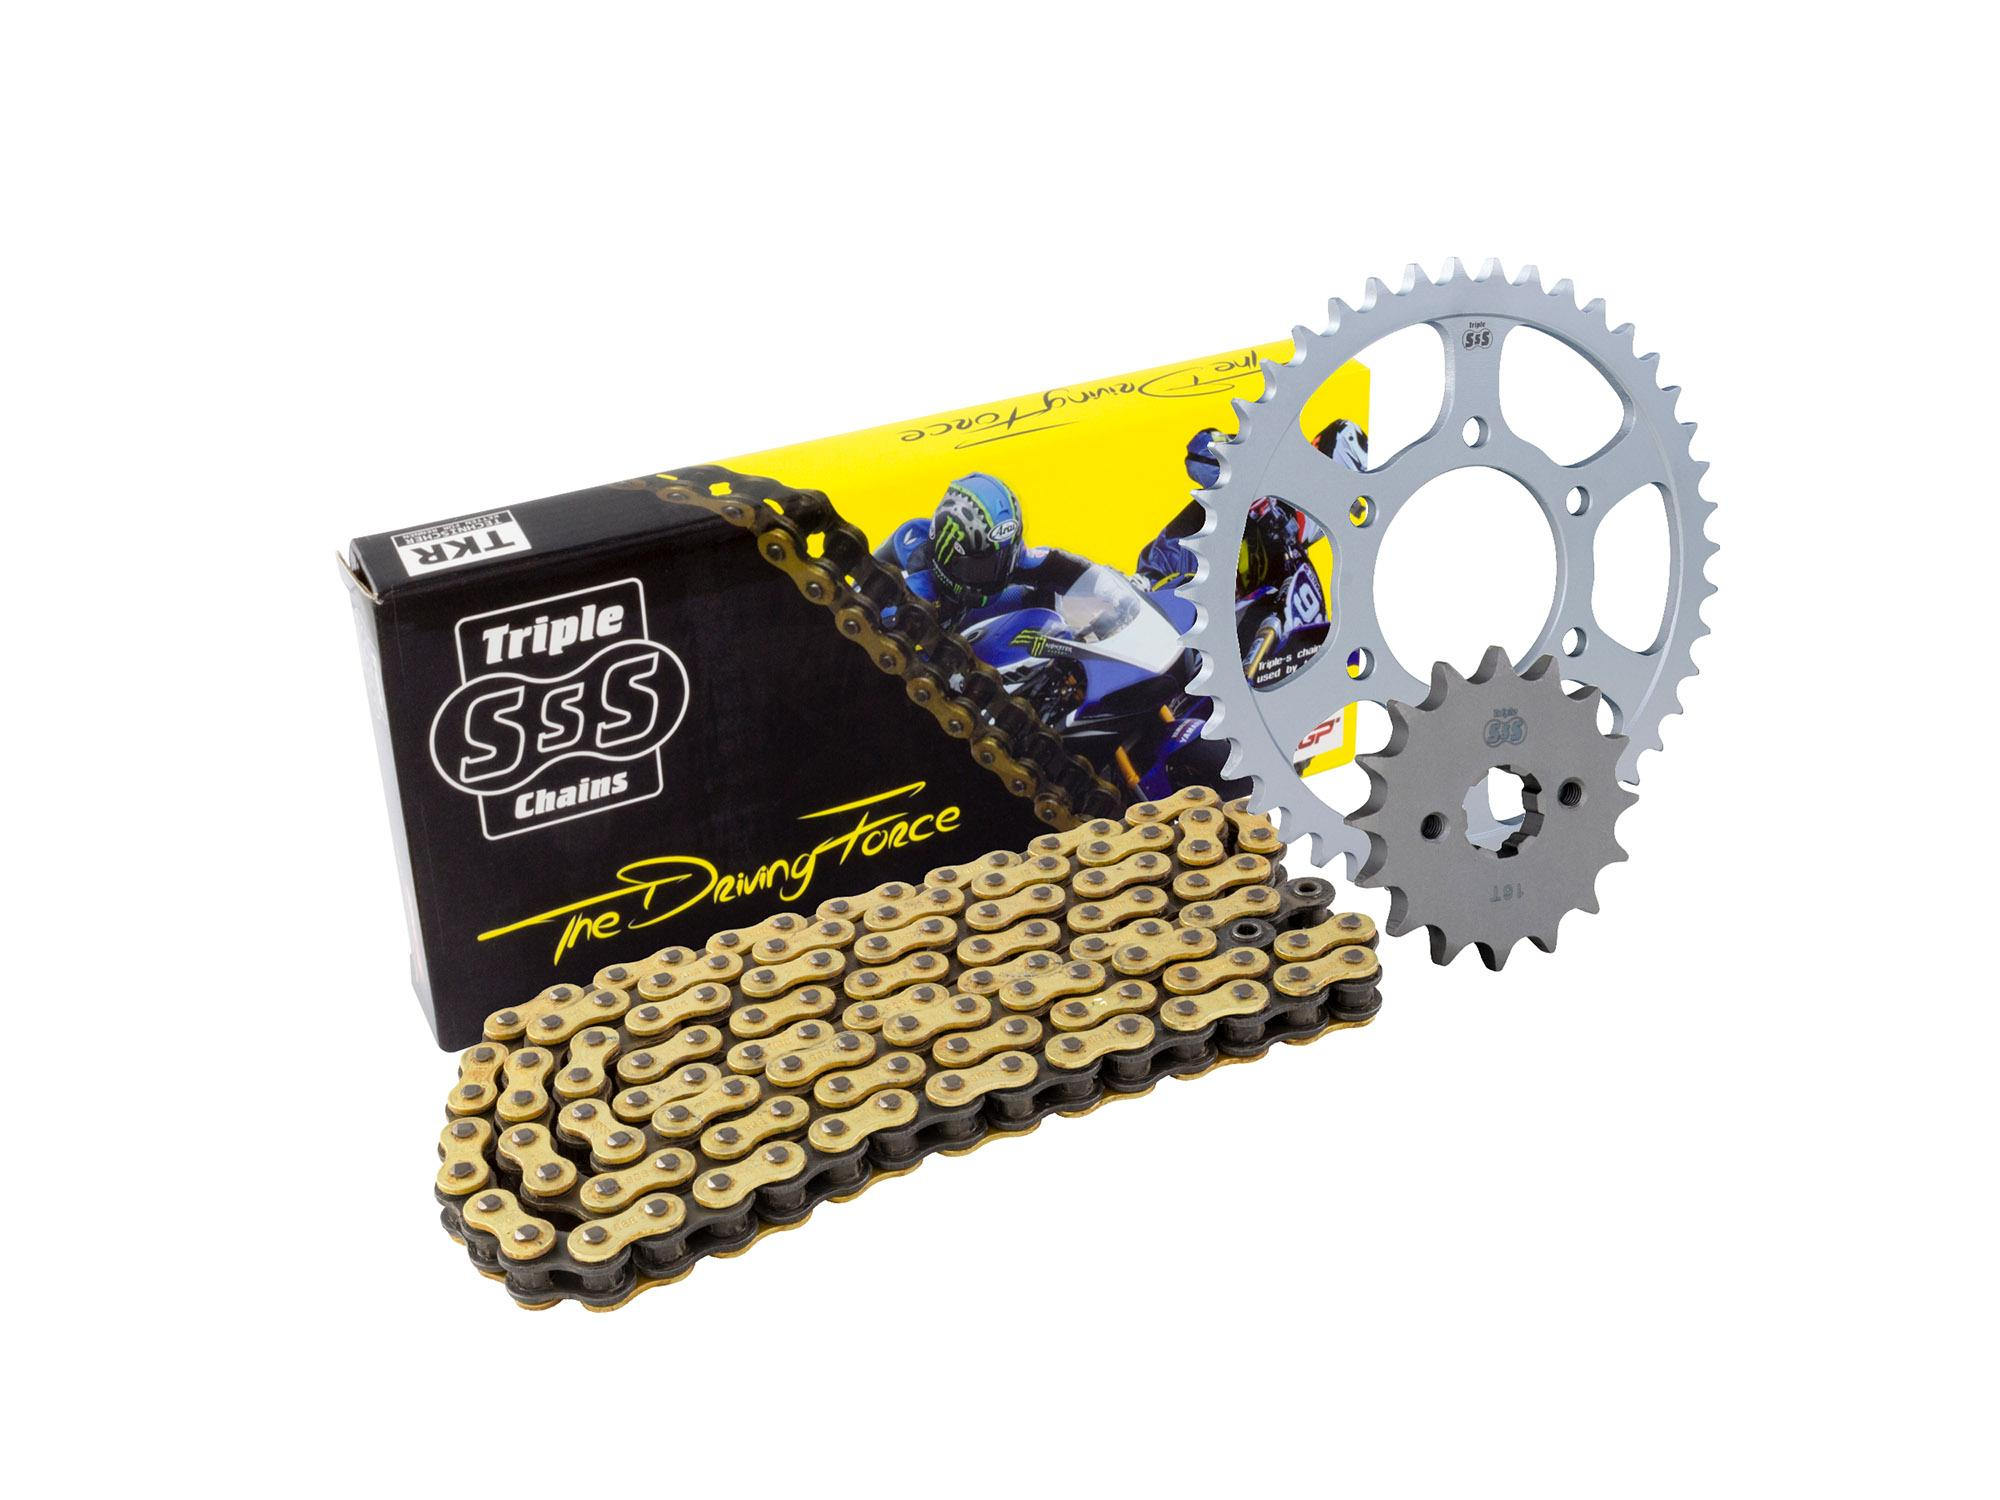 Yamaha GTS1000 93-00 Chain & Sprocket Kit: 17T Front, 47T Rear, HD O-Ring Gold Chain 530H 118 Link